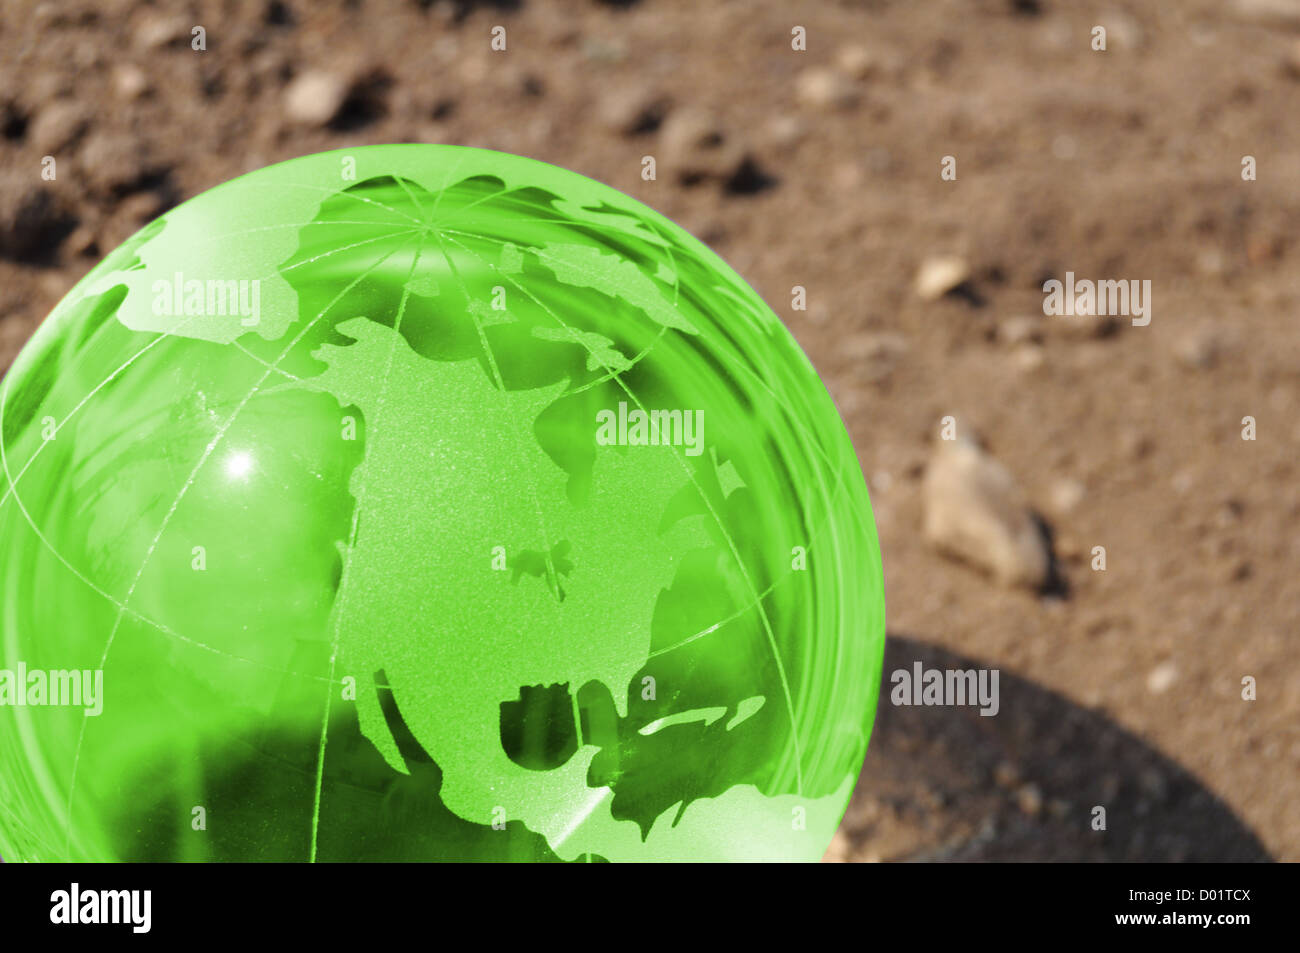 climate change concept with earth planet on dry soil and copyspace - Stock Image